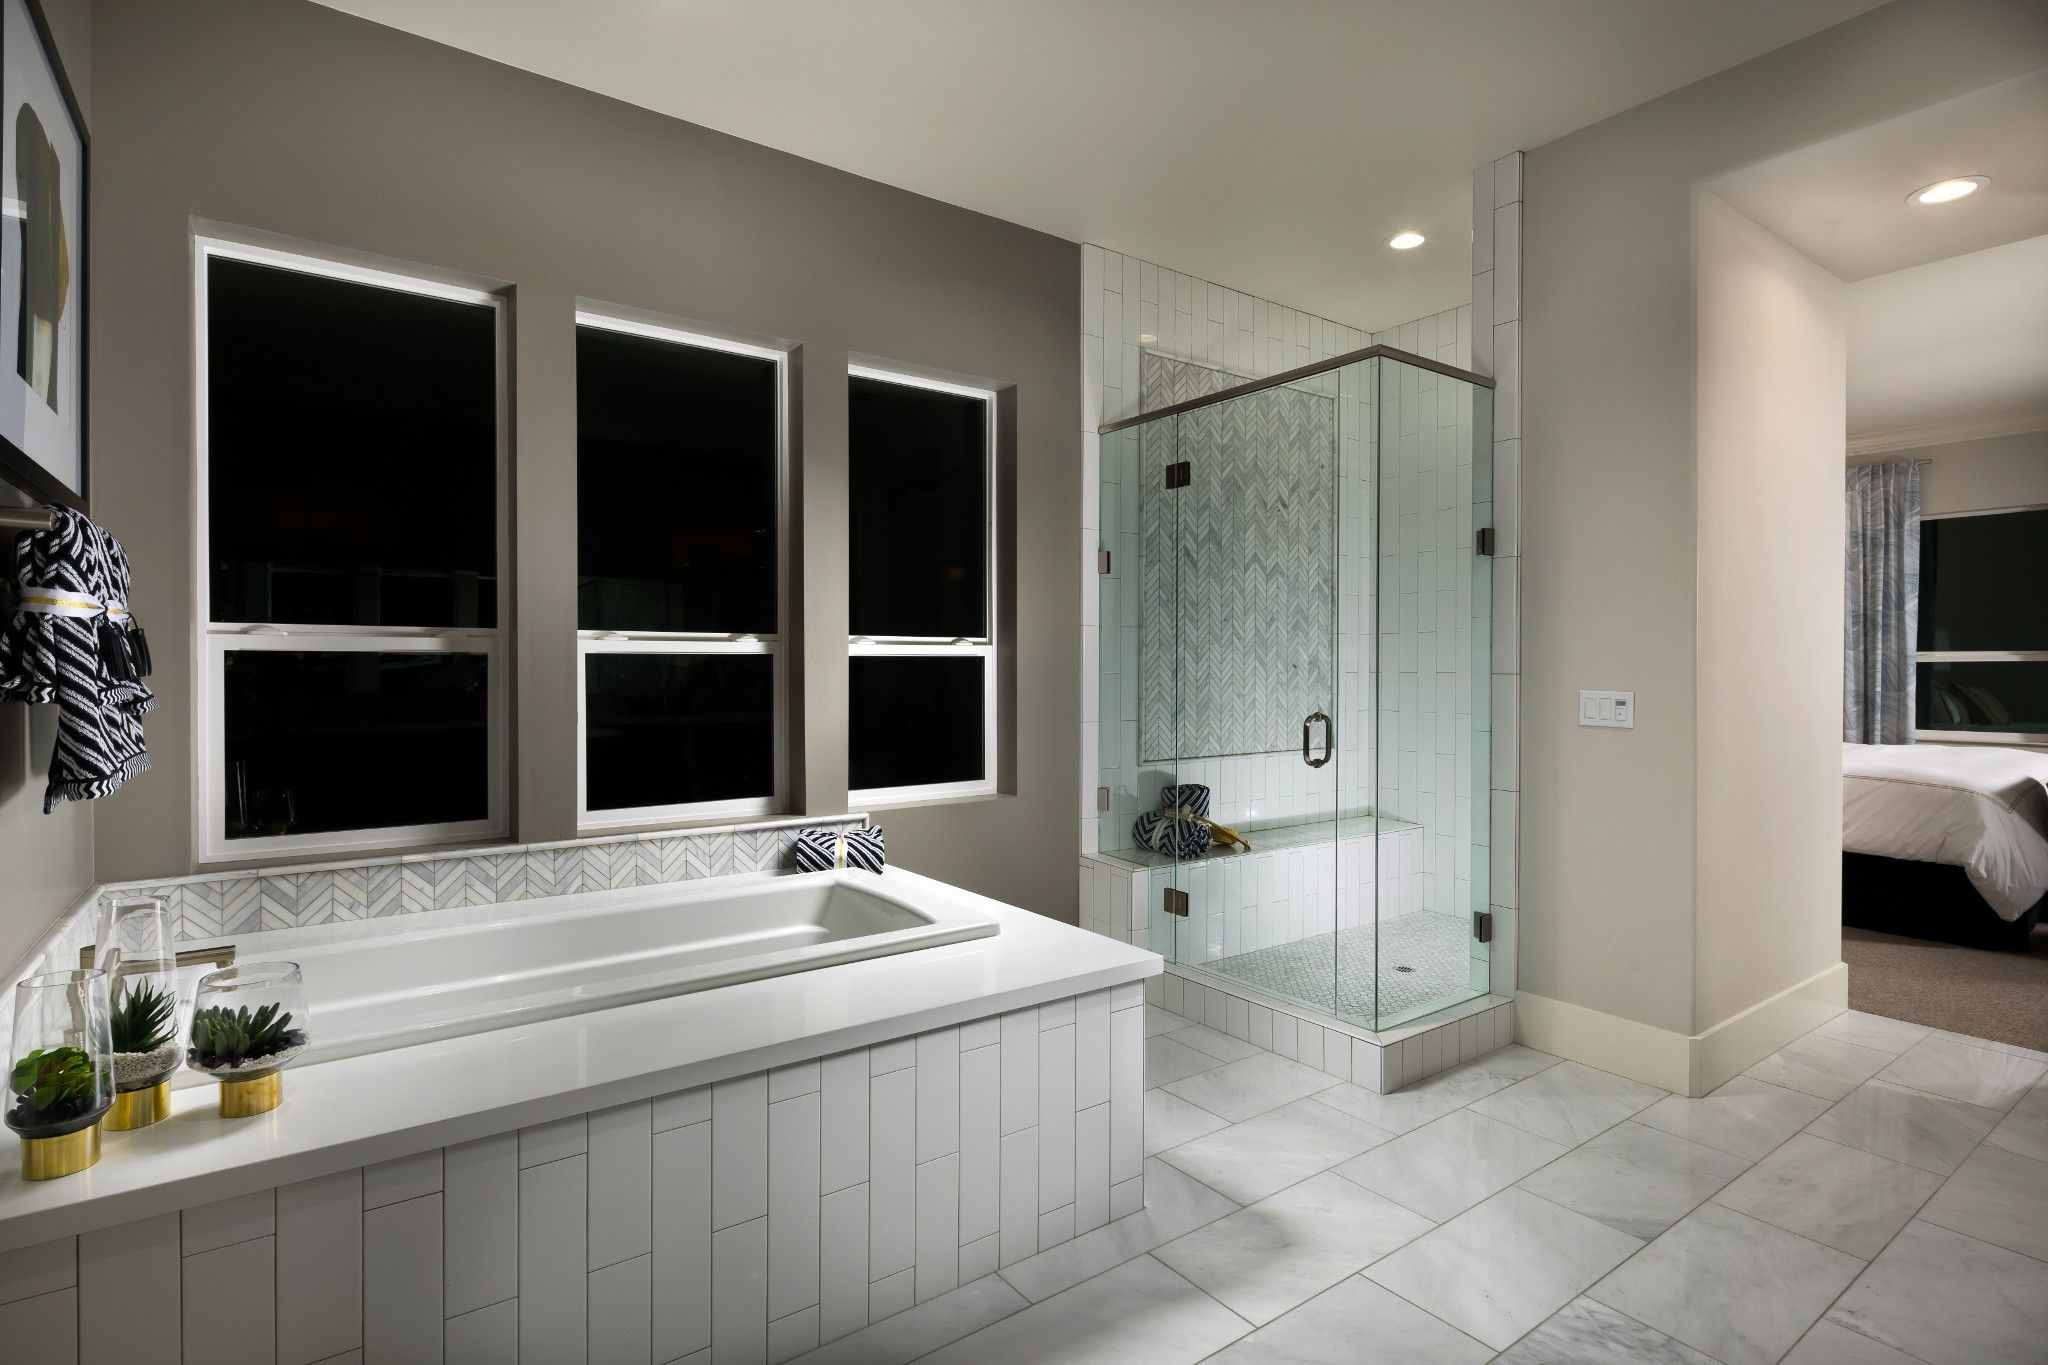 Bathroom featured in the Carmel By Shea Homes - Trilogy in San Luis Obispo, CA